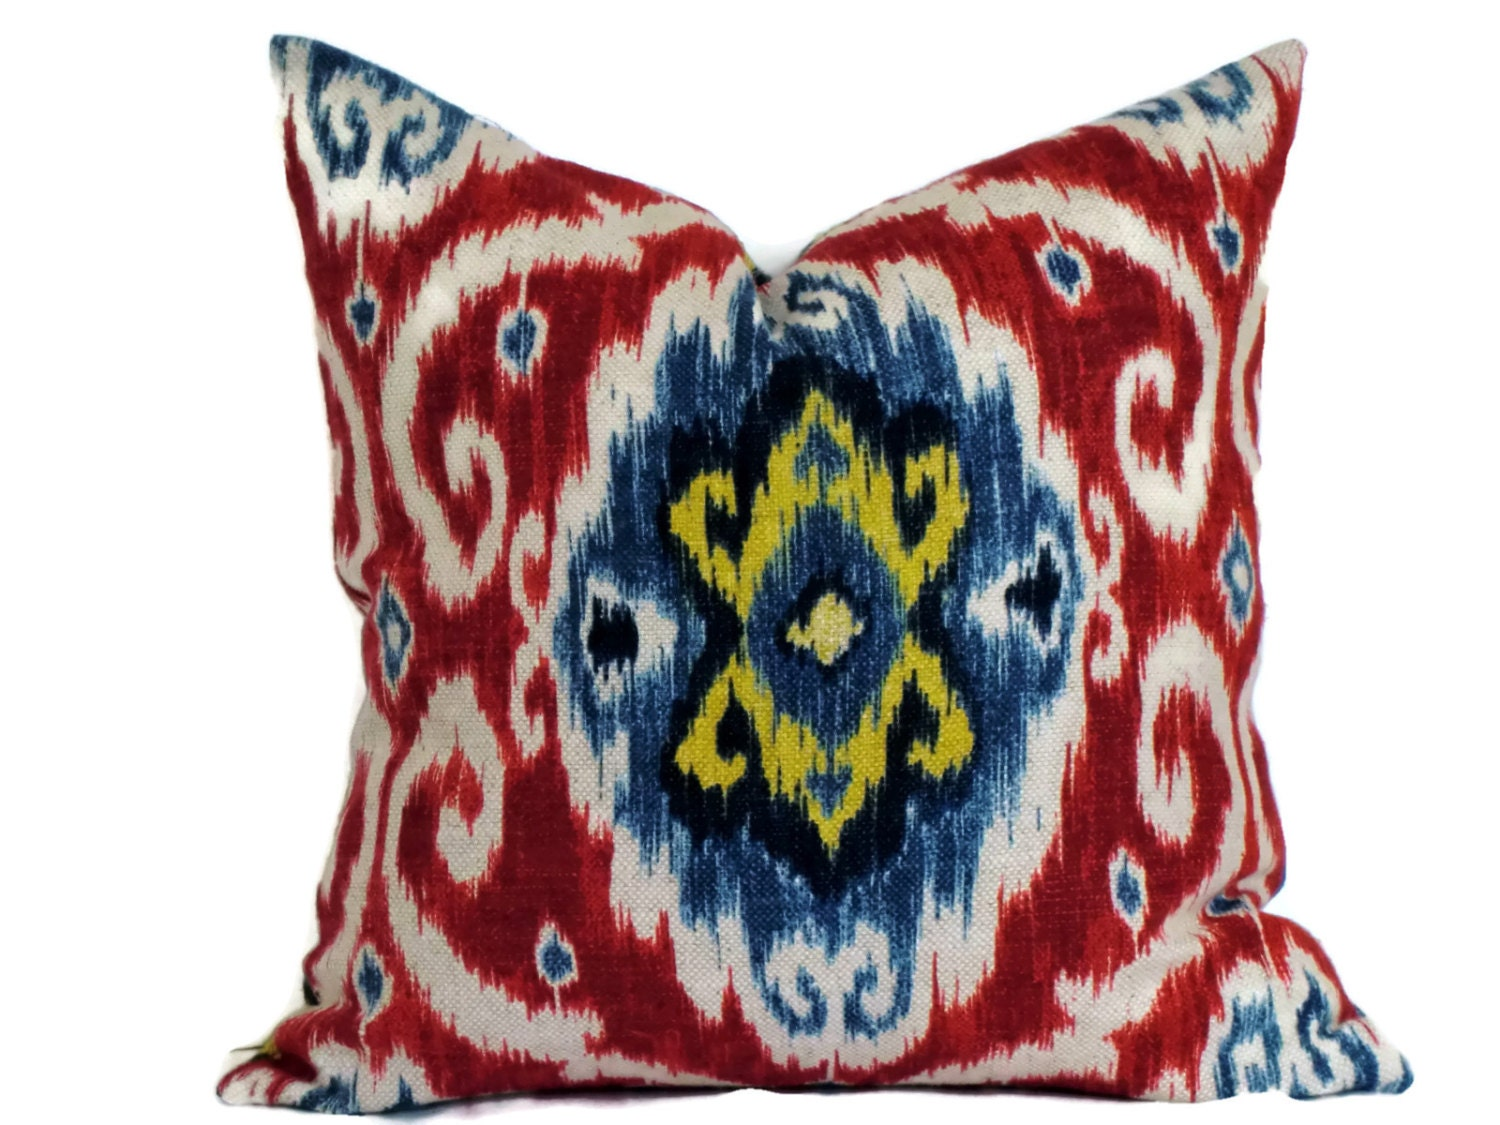 Iman red and blue ikat decorative pillow pillow cover throw for Red and blue pillows